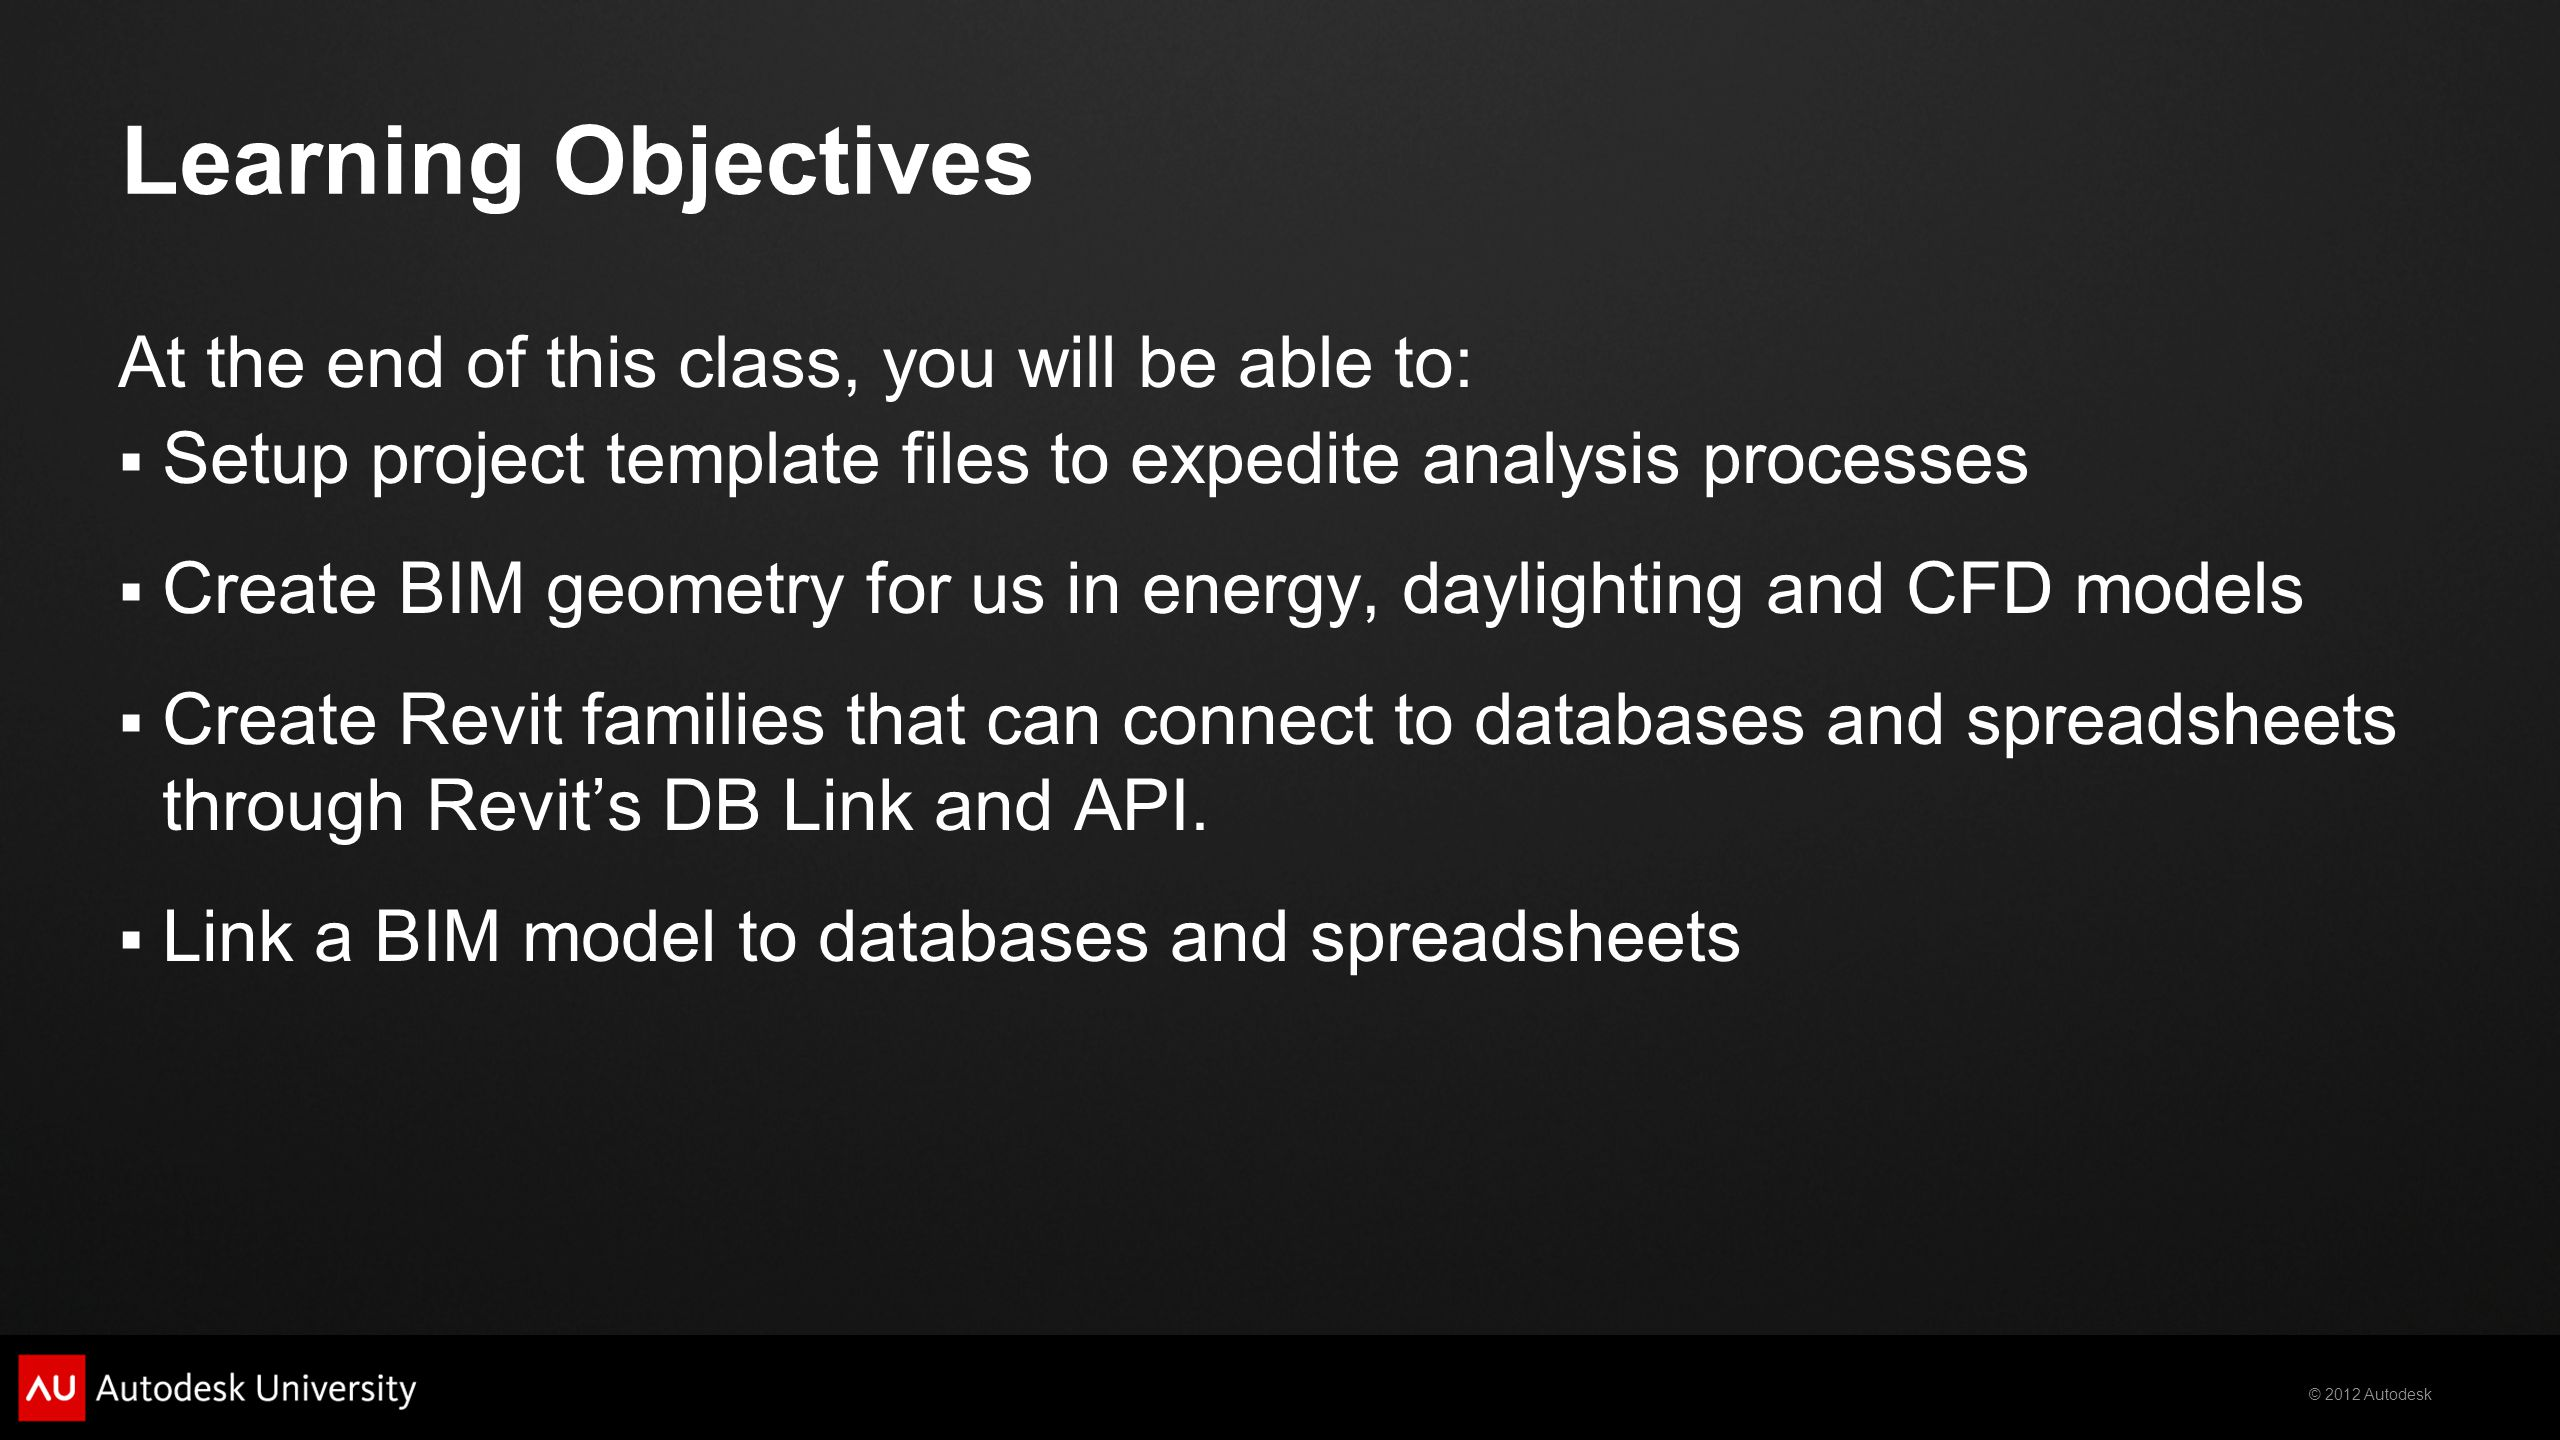 © 2012 Autodesk Learning Objectives At the end of this class, you will be able to: Setup project template files to expedite analysis processes Create BIM geometry for us in energy, daylighting and CFD models Create Revit families that can connect to databases and spreadsheets through Revits DB Link and API.